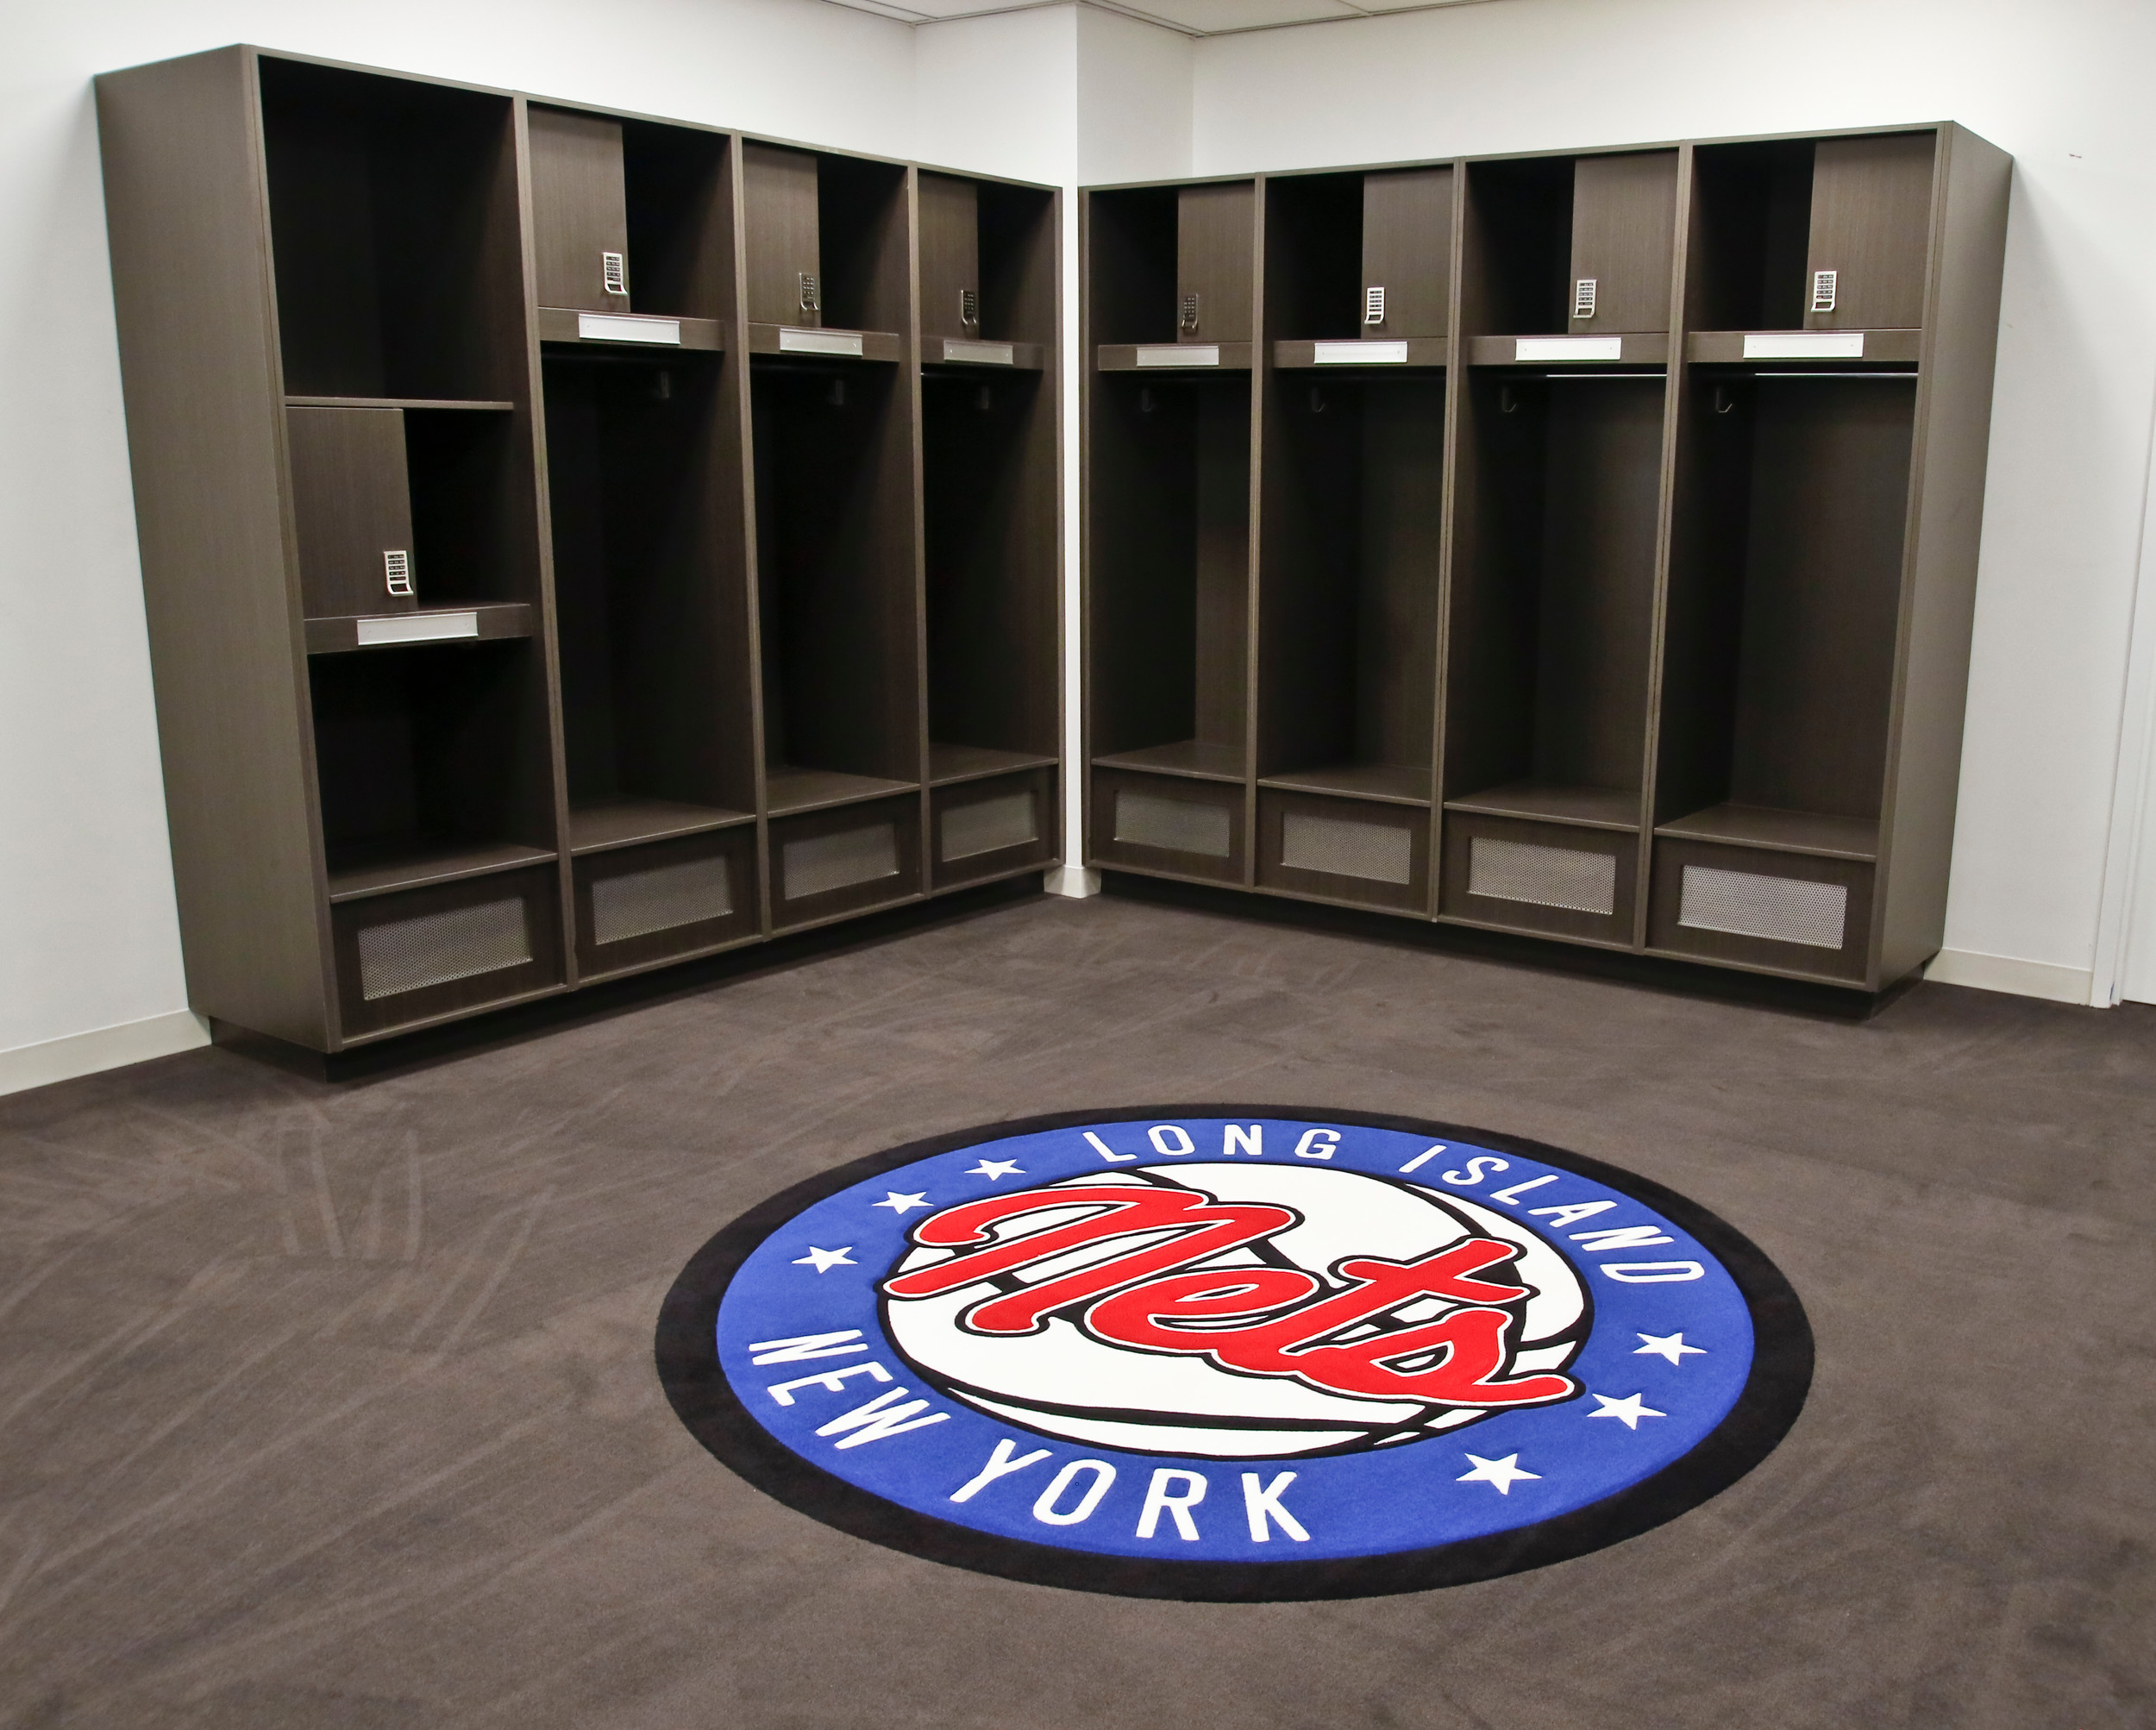 Part of the Nets locker room.